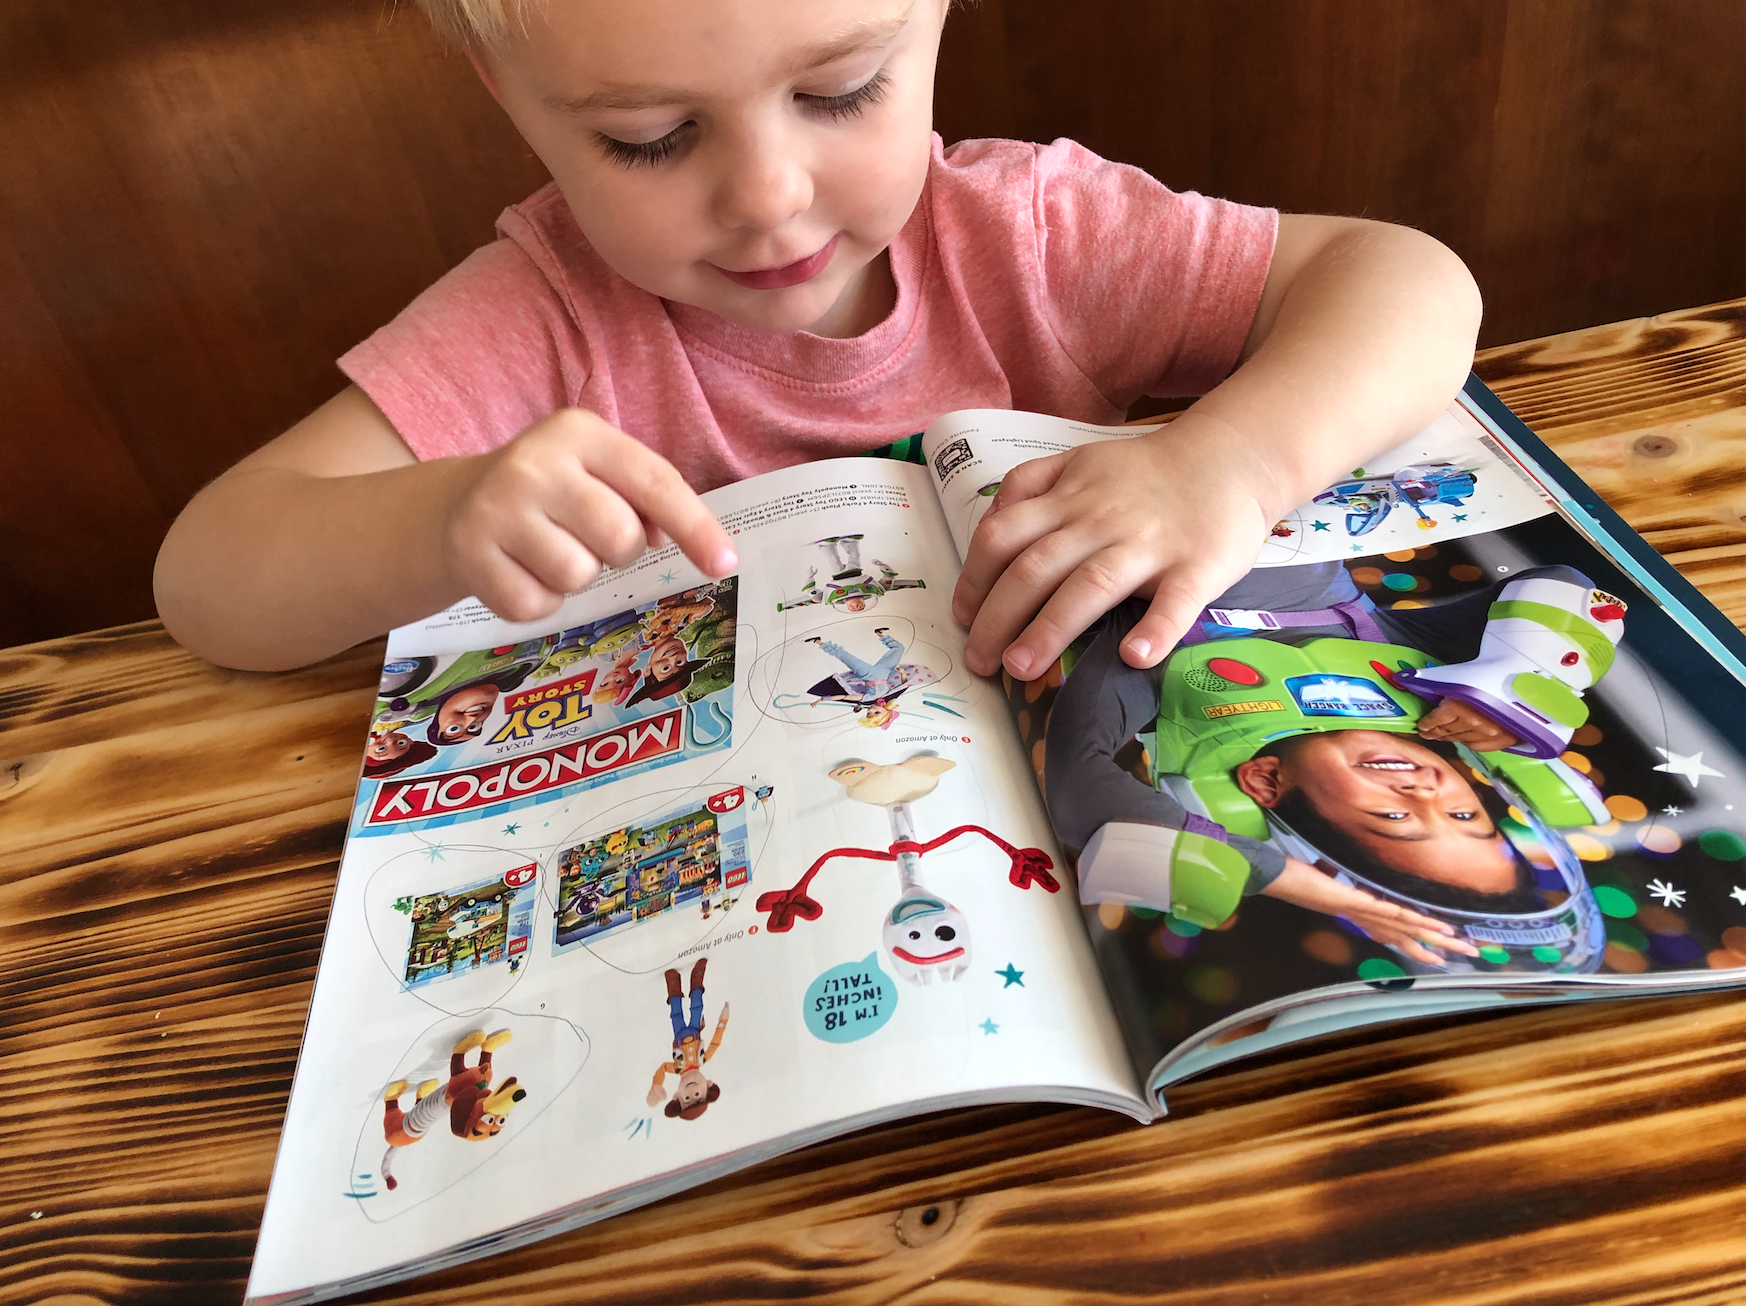 Amazon catalog child looking through pages